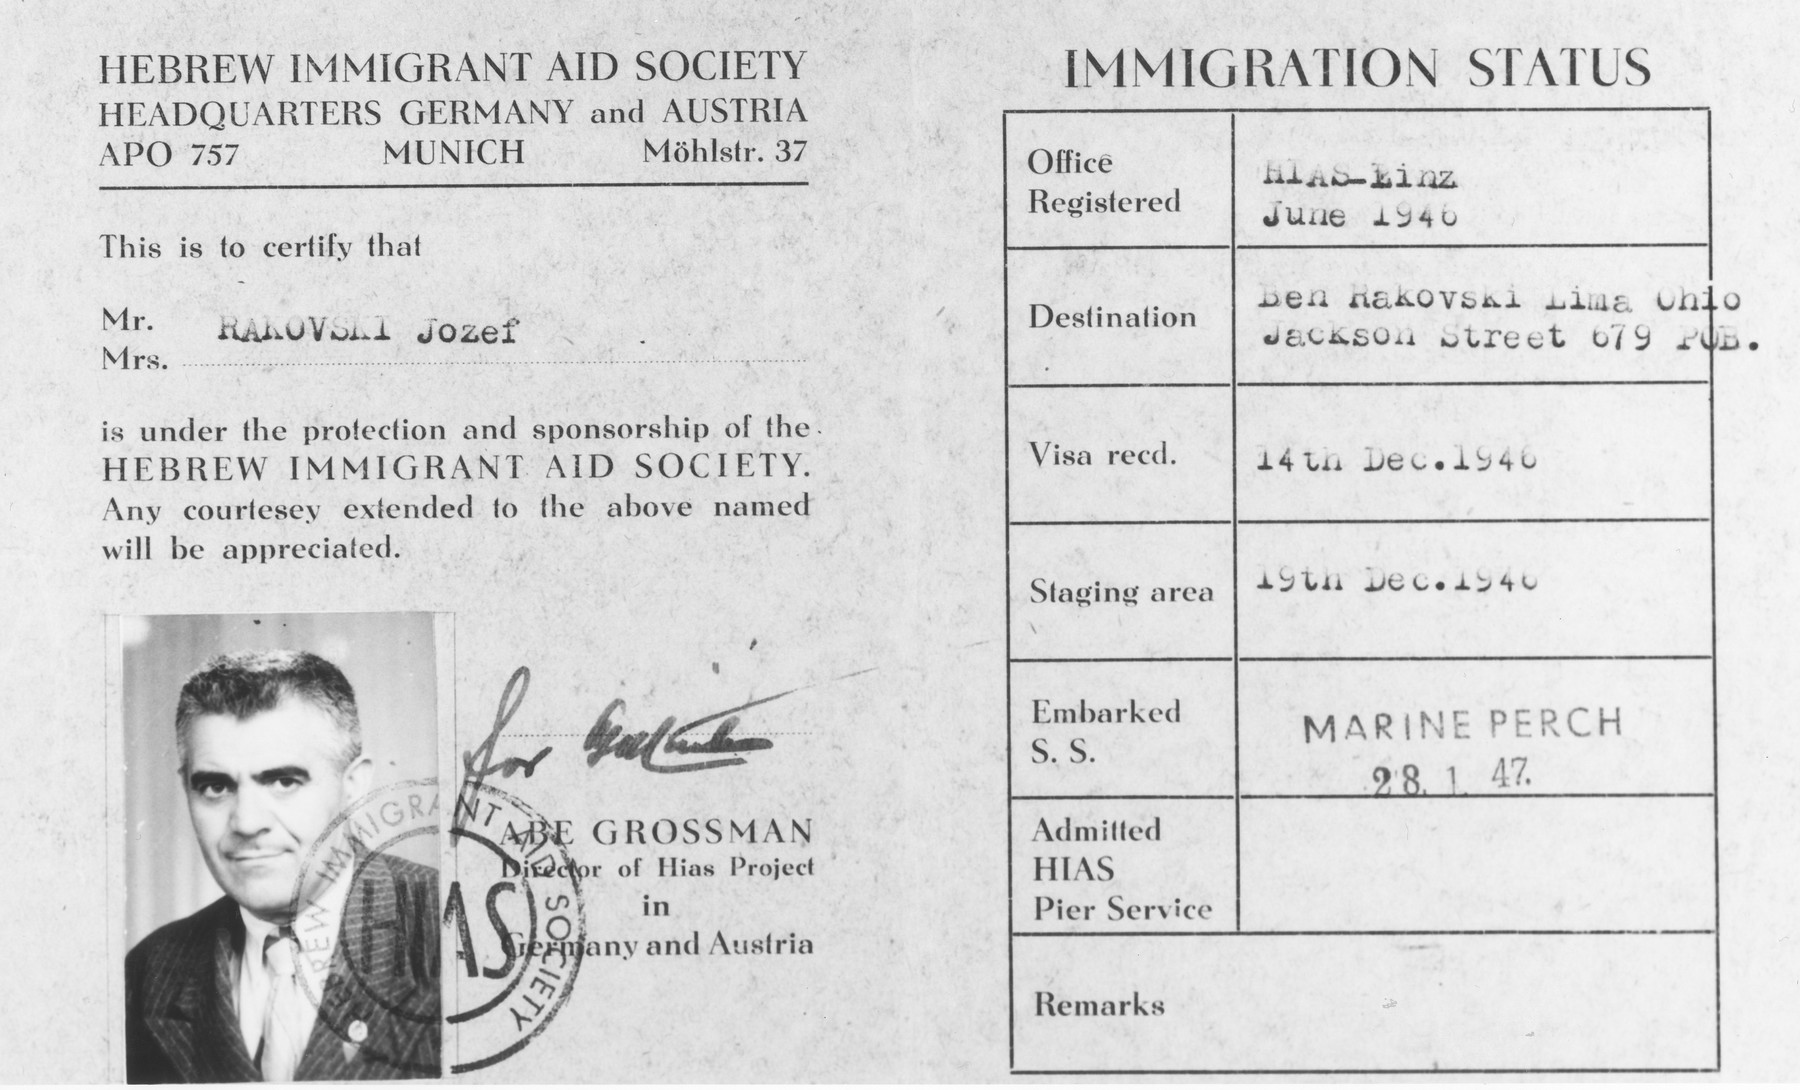 Document certifying that Jozef Rakovski [Rakowski] is under the sponsorship of the Hebrew Immigrant Aid Society (HIAS) during his voyage to the United States.